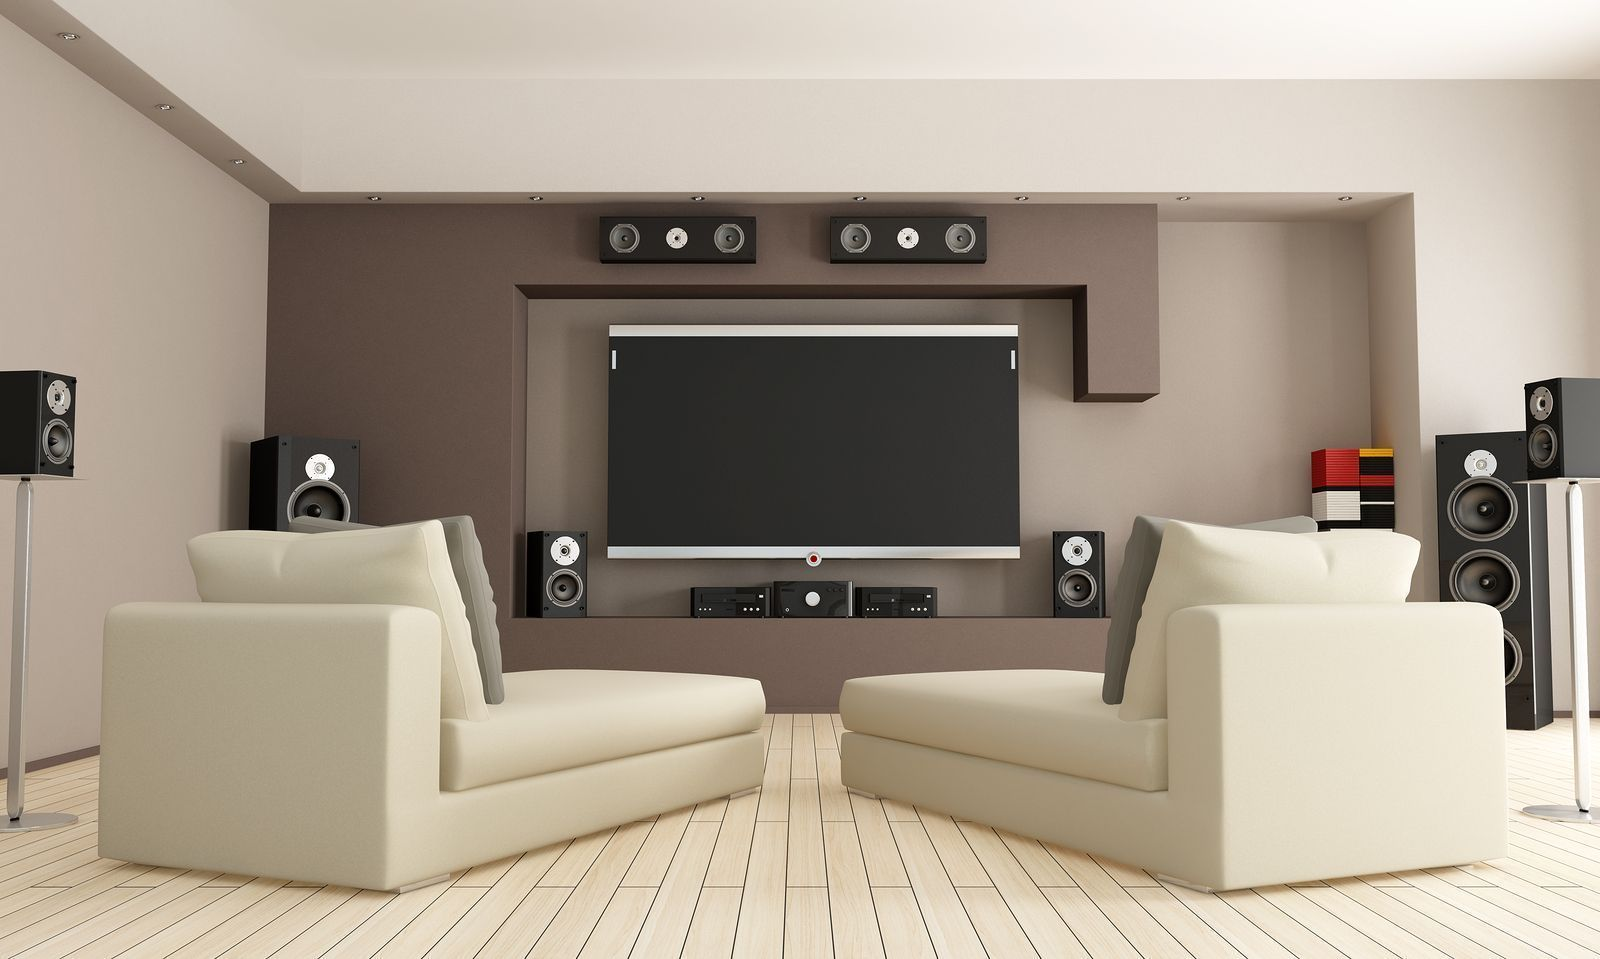 Make Room For Your Own Cinema Tag Home Theater Ideas 2017 Home Simple Living Room Home Theater Ideas Inspiration Design